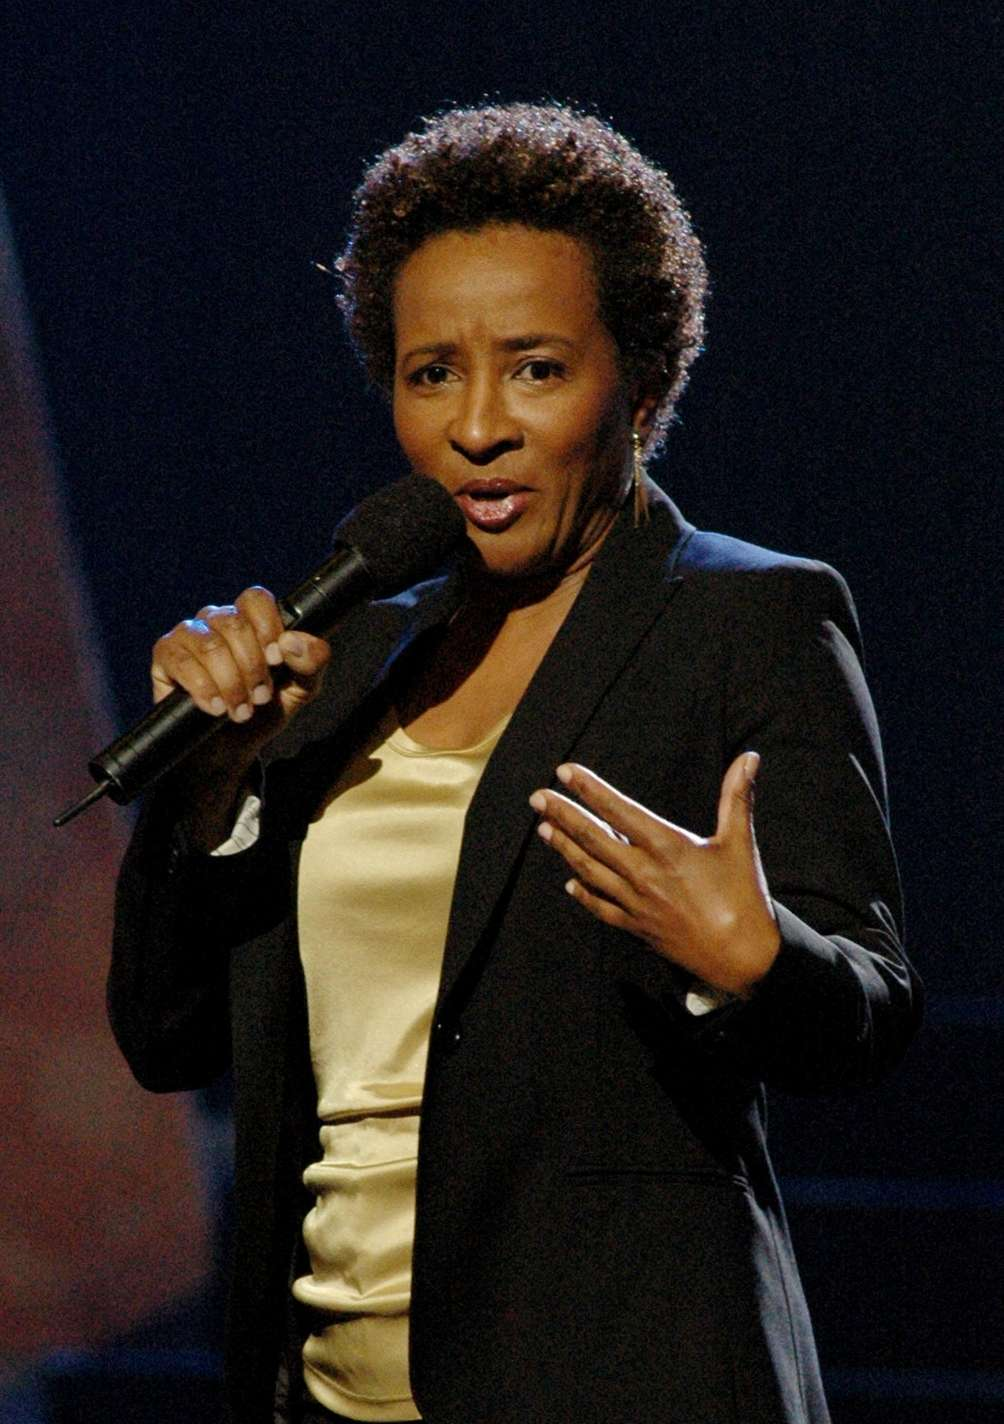 Comedian Wanda Sykes elected to have a prophylactic